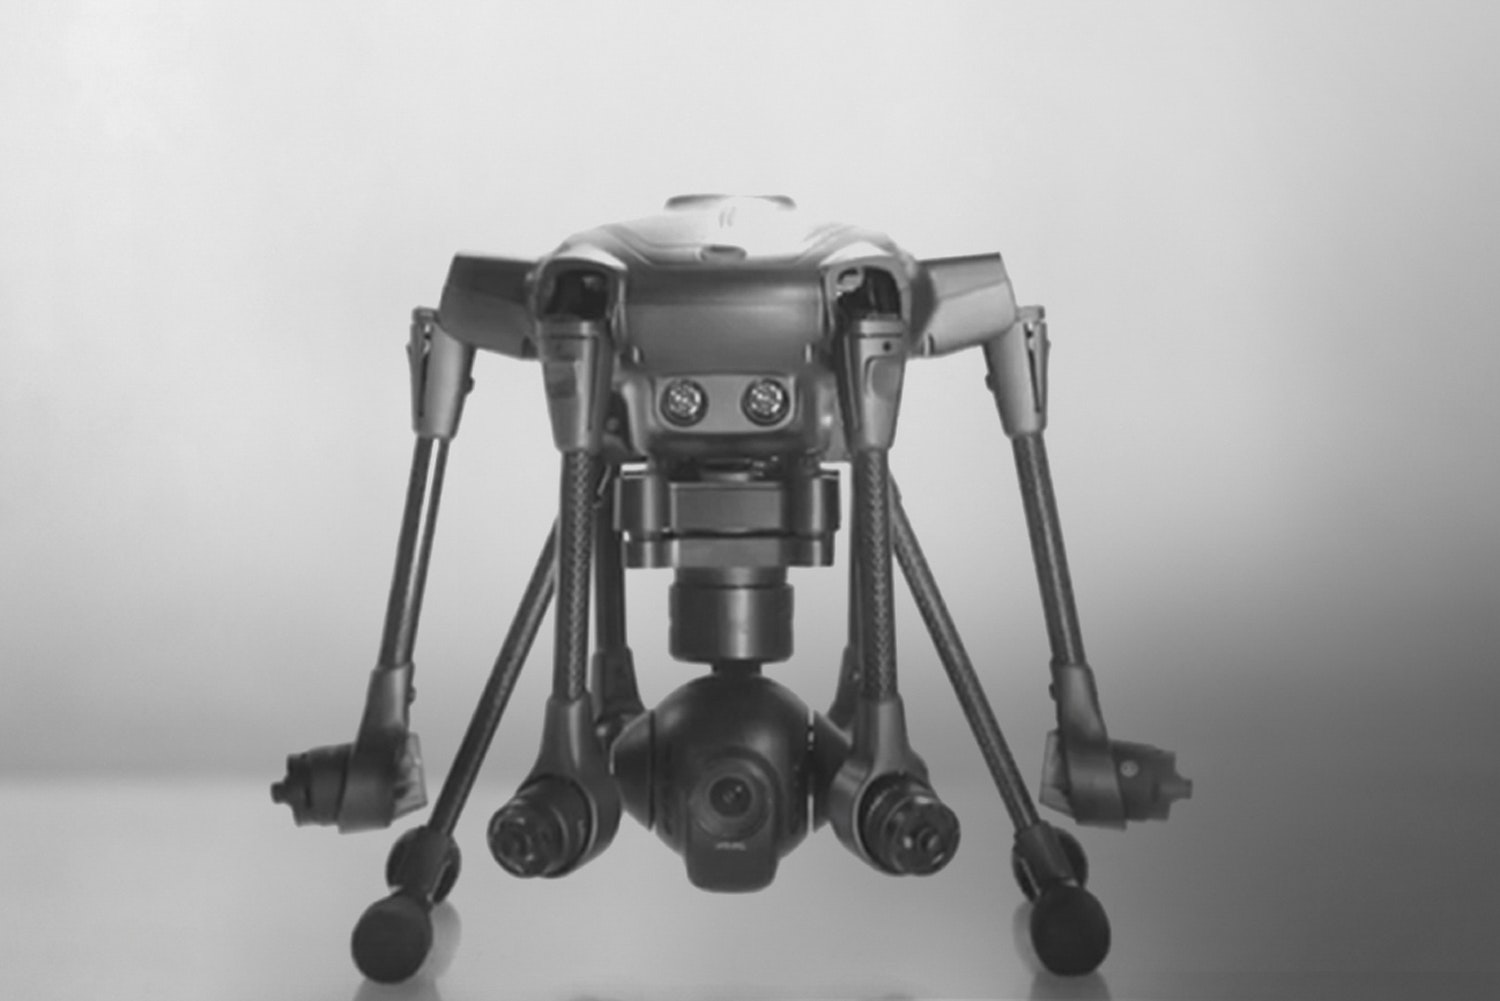 Yuneec Typhoon H Pro RealSense Bundle (refurb)